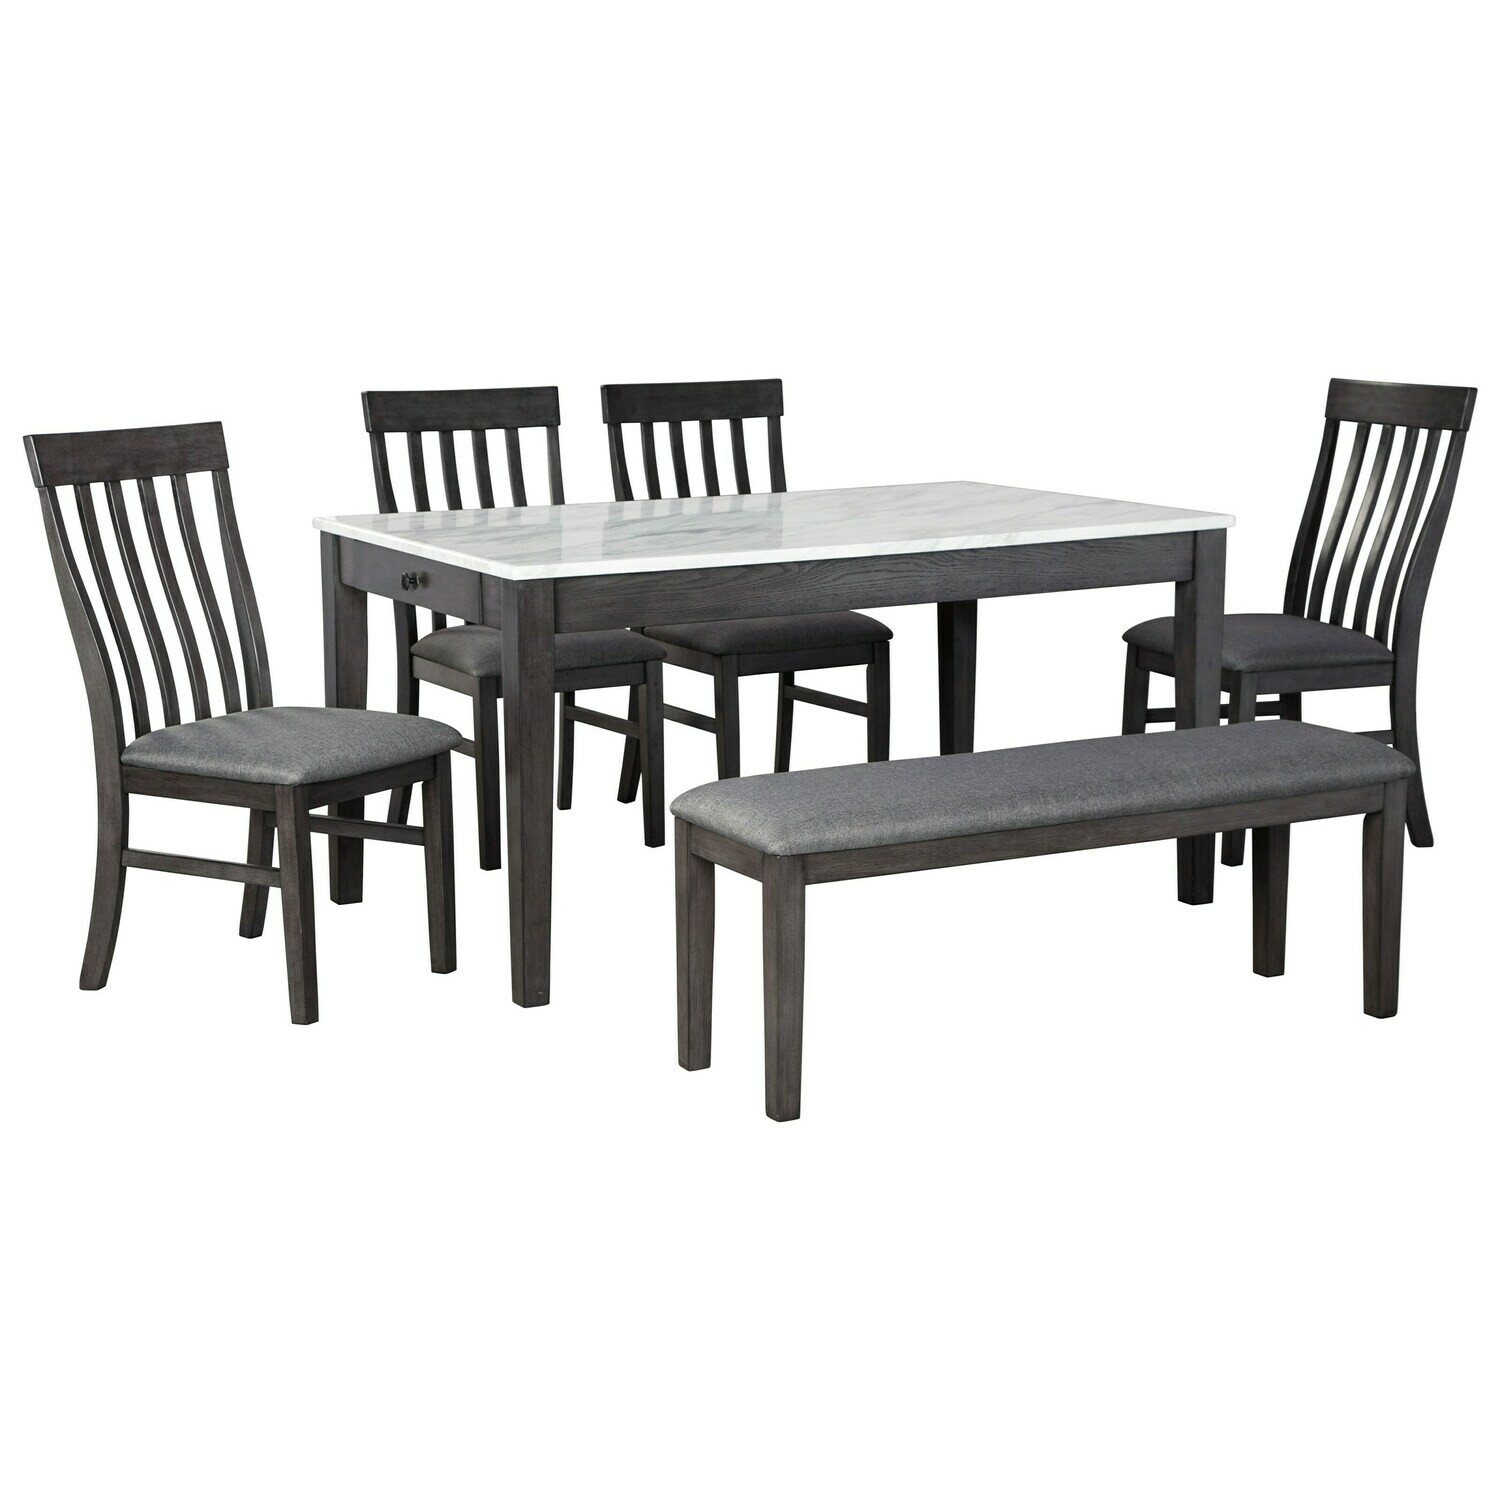 Luvoni 6-Piece Dining Set with Bench and Faux Marble Top Dining Table